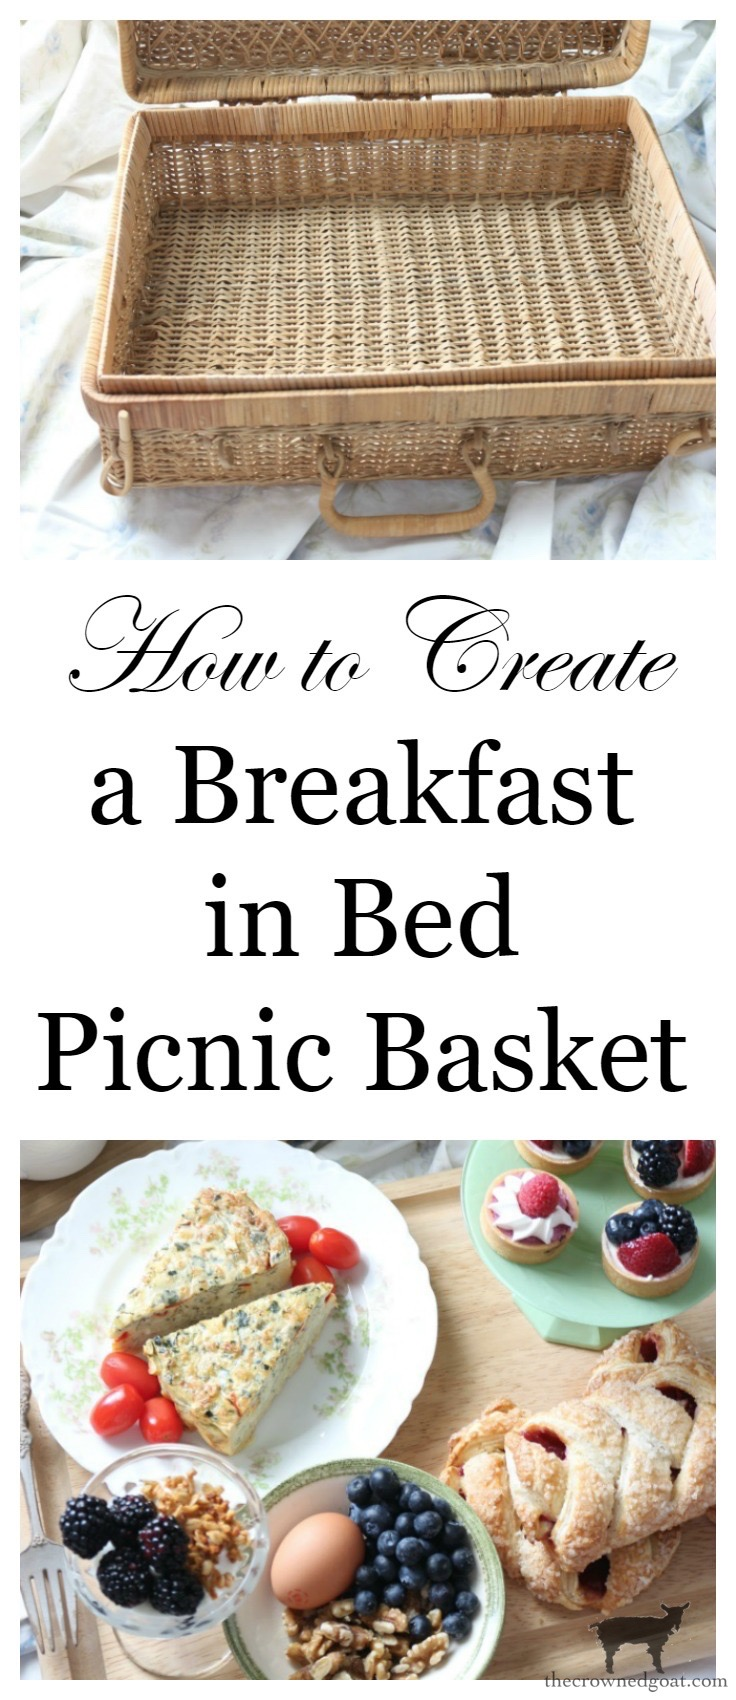 How-to-Create-a-Breakfast-in-Bed-Picnic-Basket-6 Breakfast in Bed Picnic for Mother's Day DIY Holidays Spring